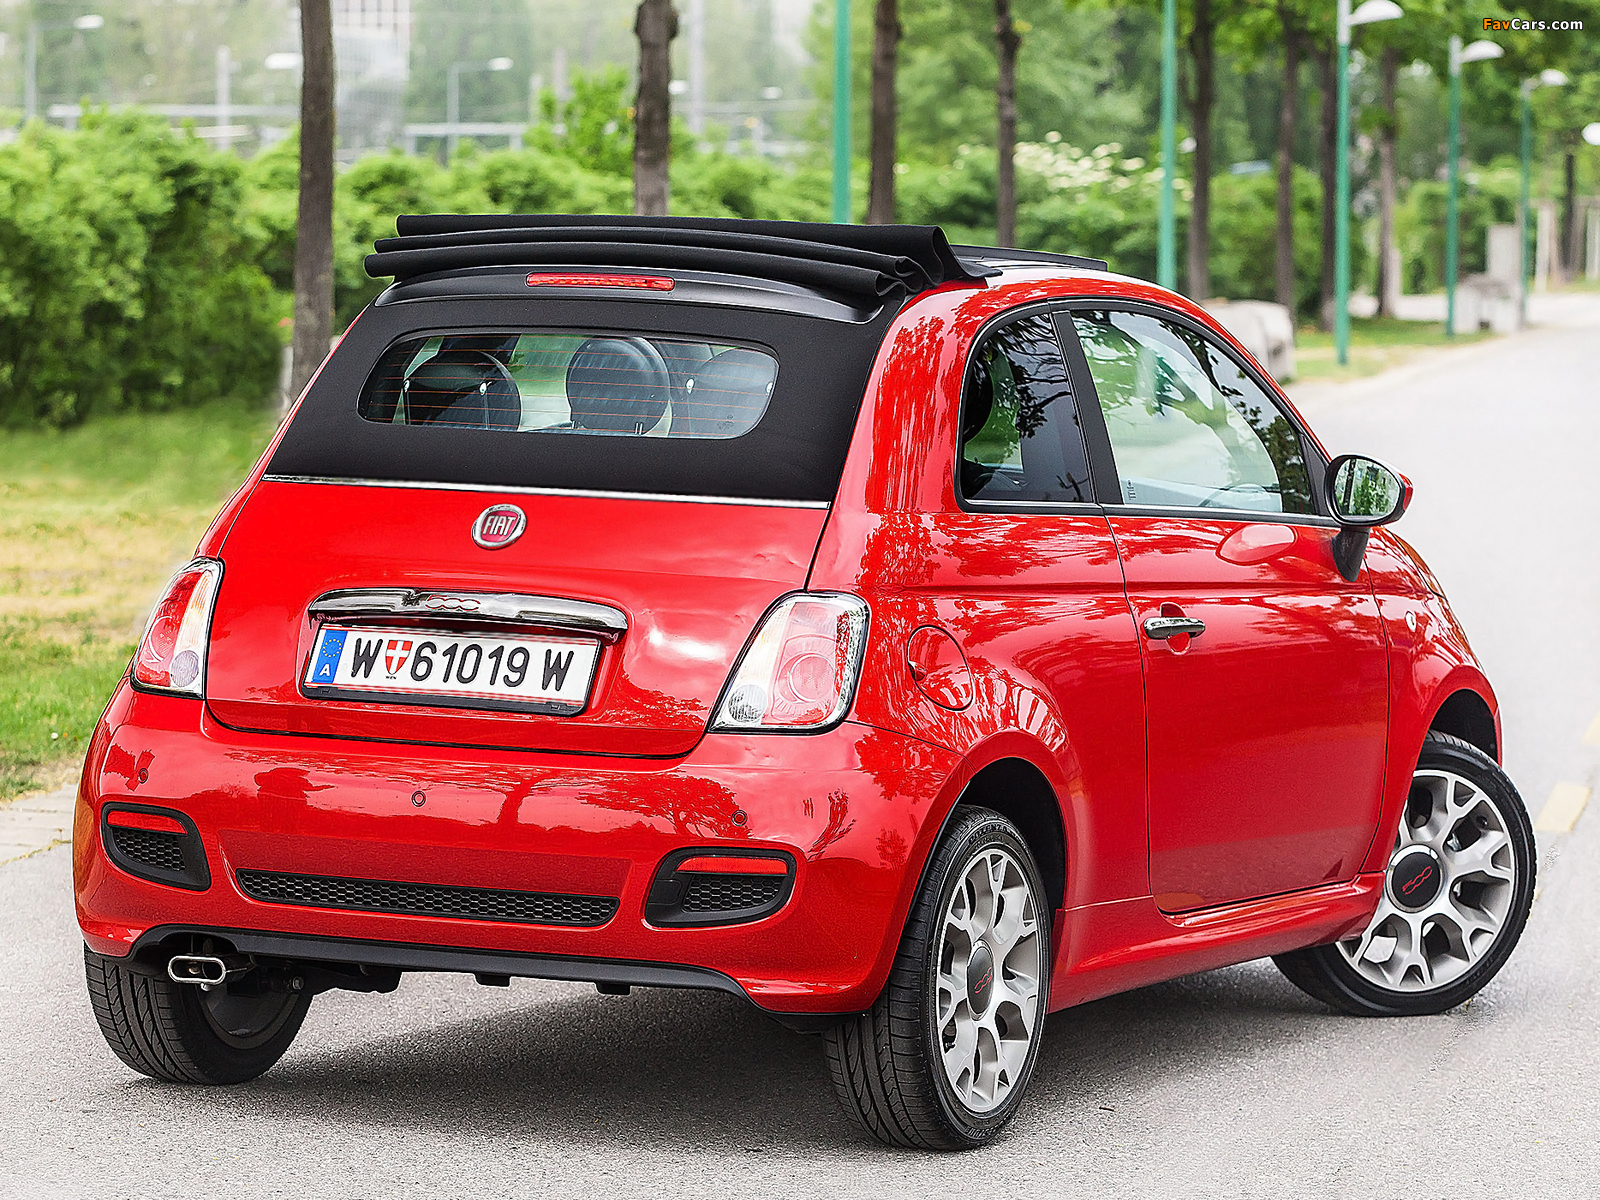 wallpapers of fiat 500s cabrio 2013 1600x1200. Black Bedroom Furniture Sets. Home Design Ideas